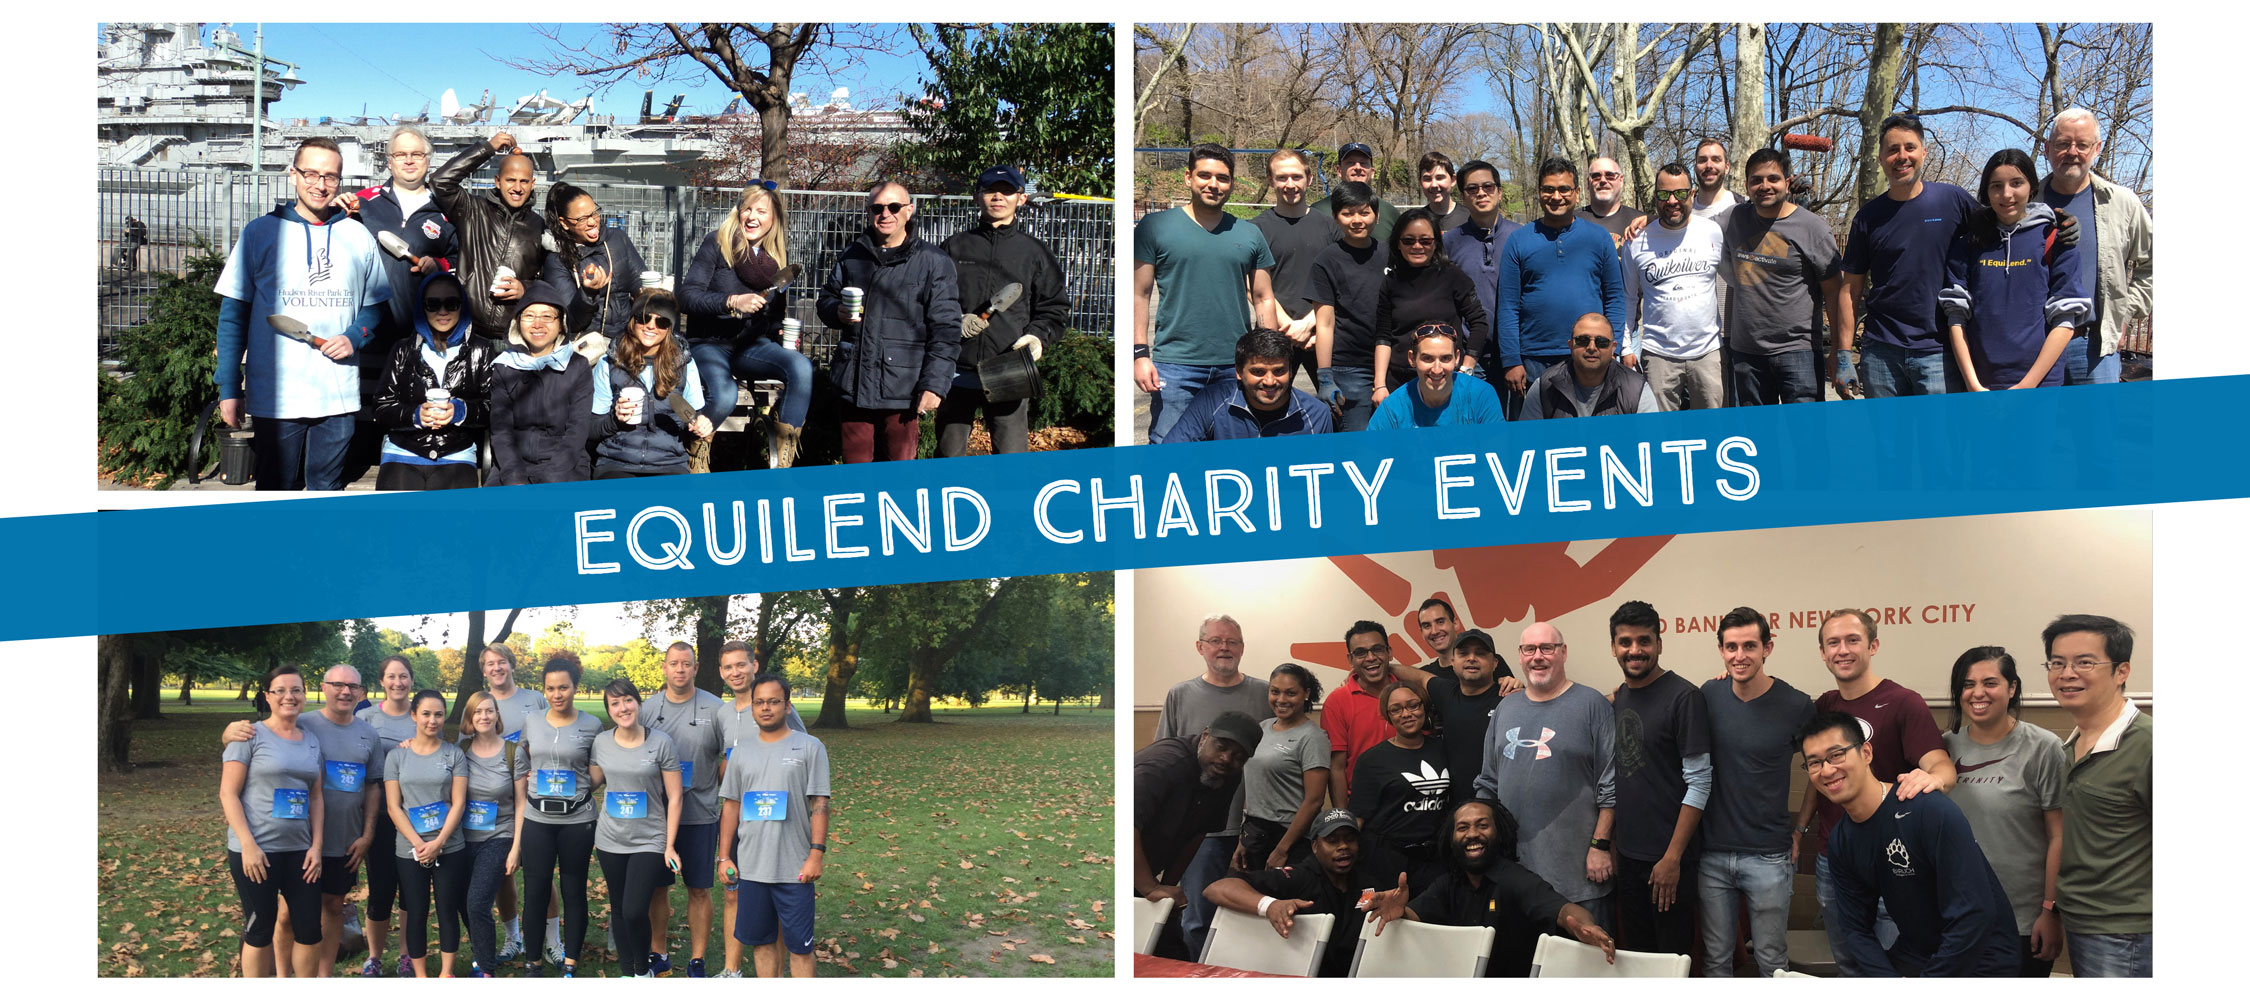 EquiLend-Charity-Wide-Sliders-4